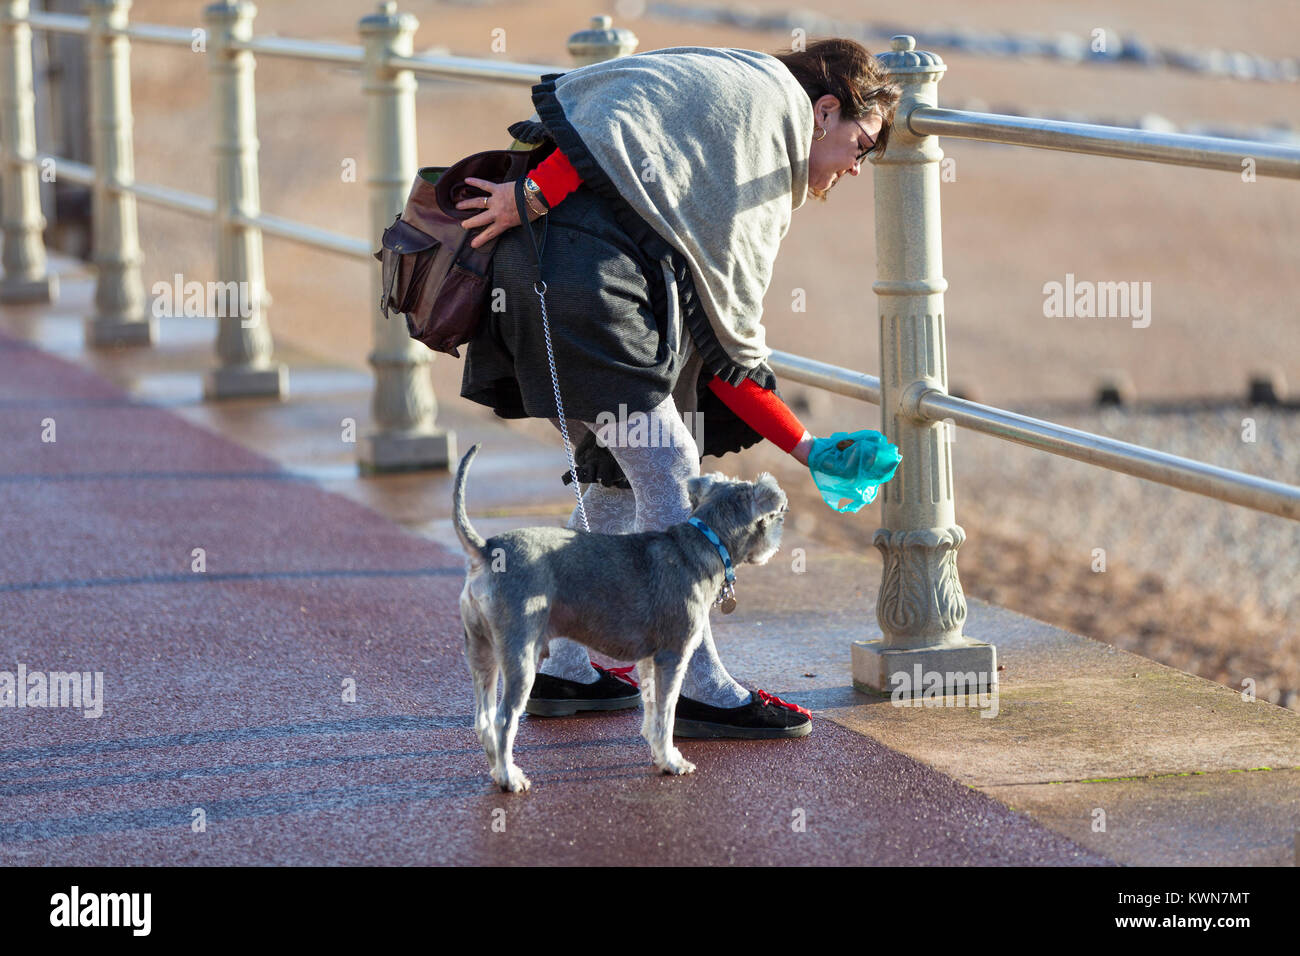 A woman bends over and picks up dog mess with a doggy bag on the hastings promenade, East Sussex - Stock Image